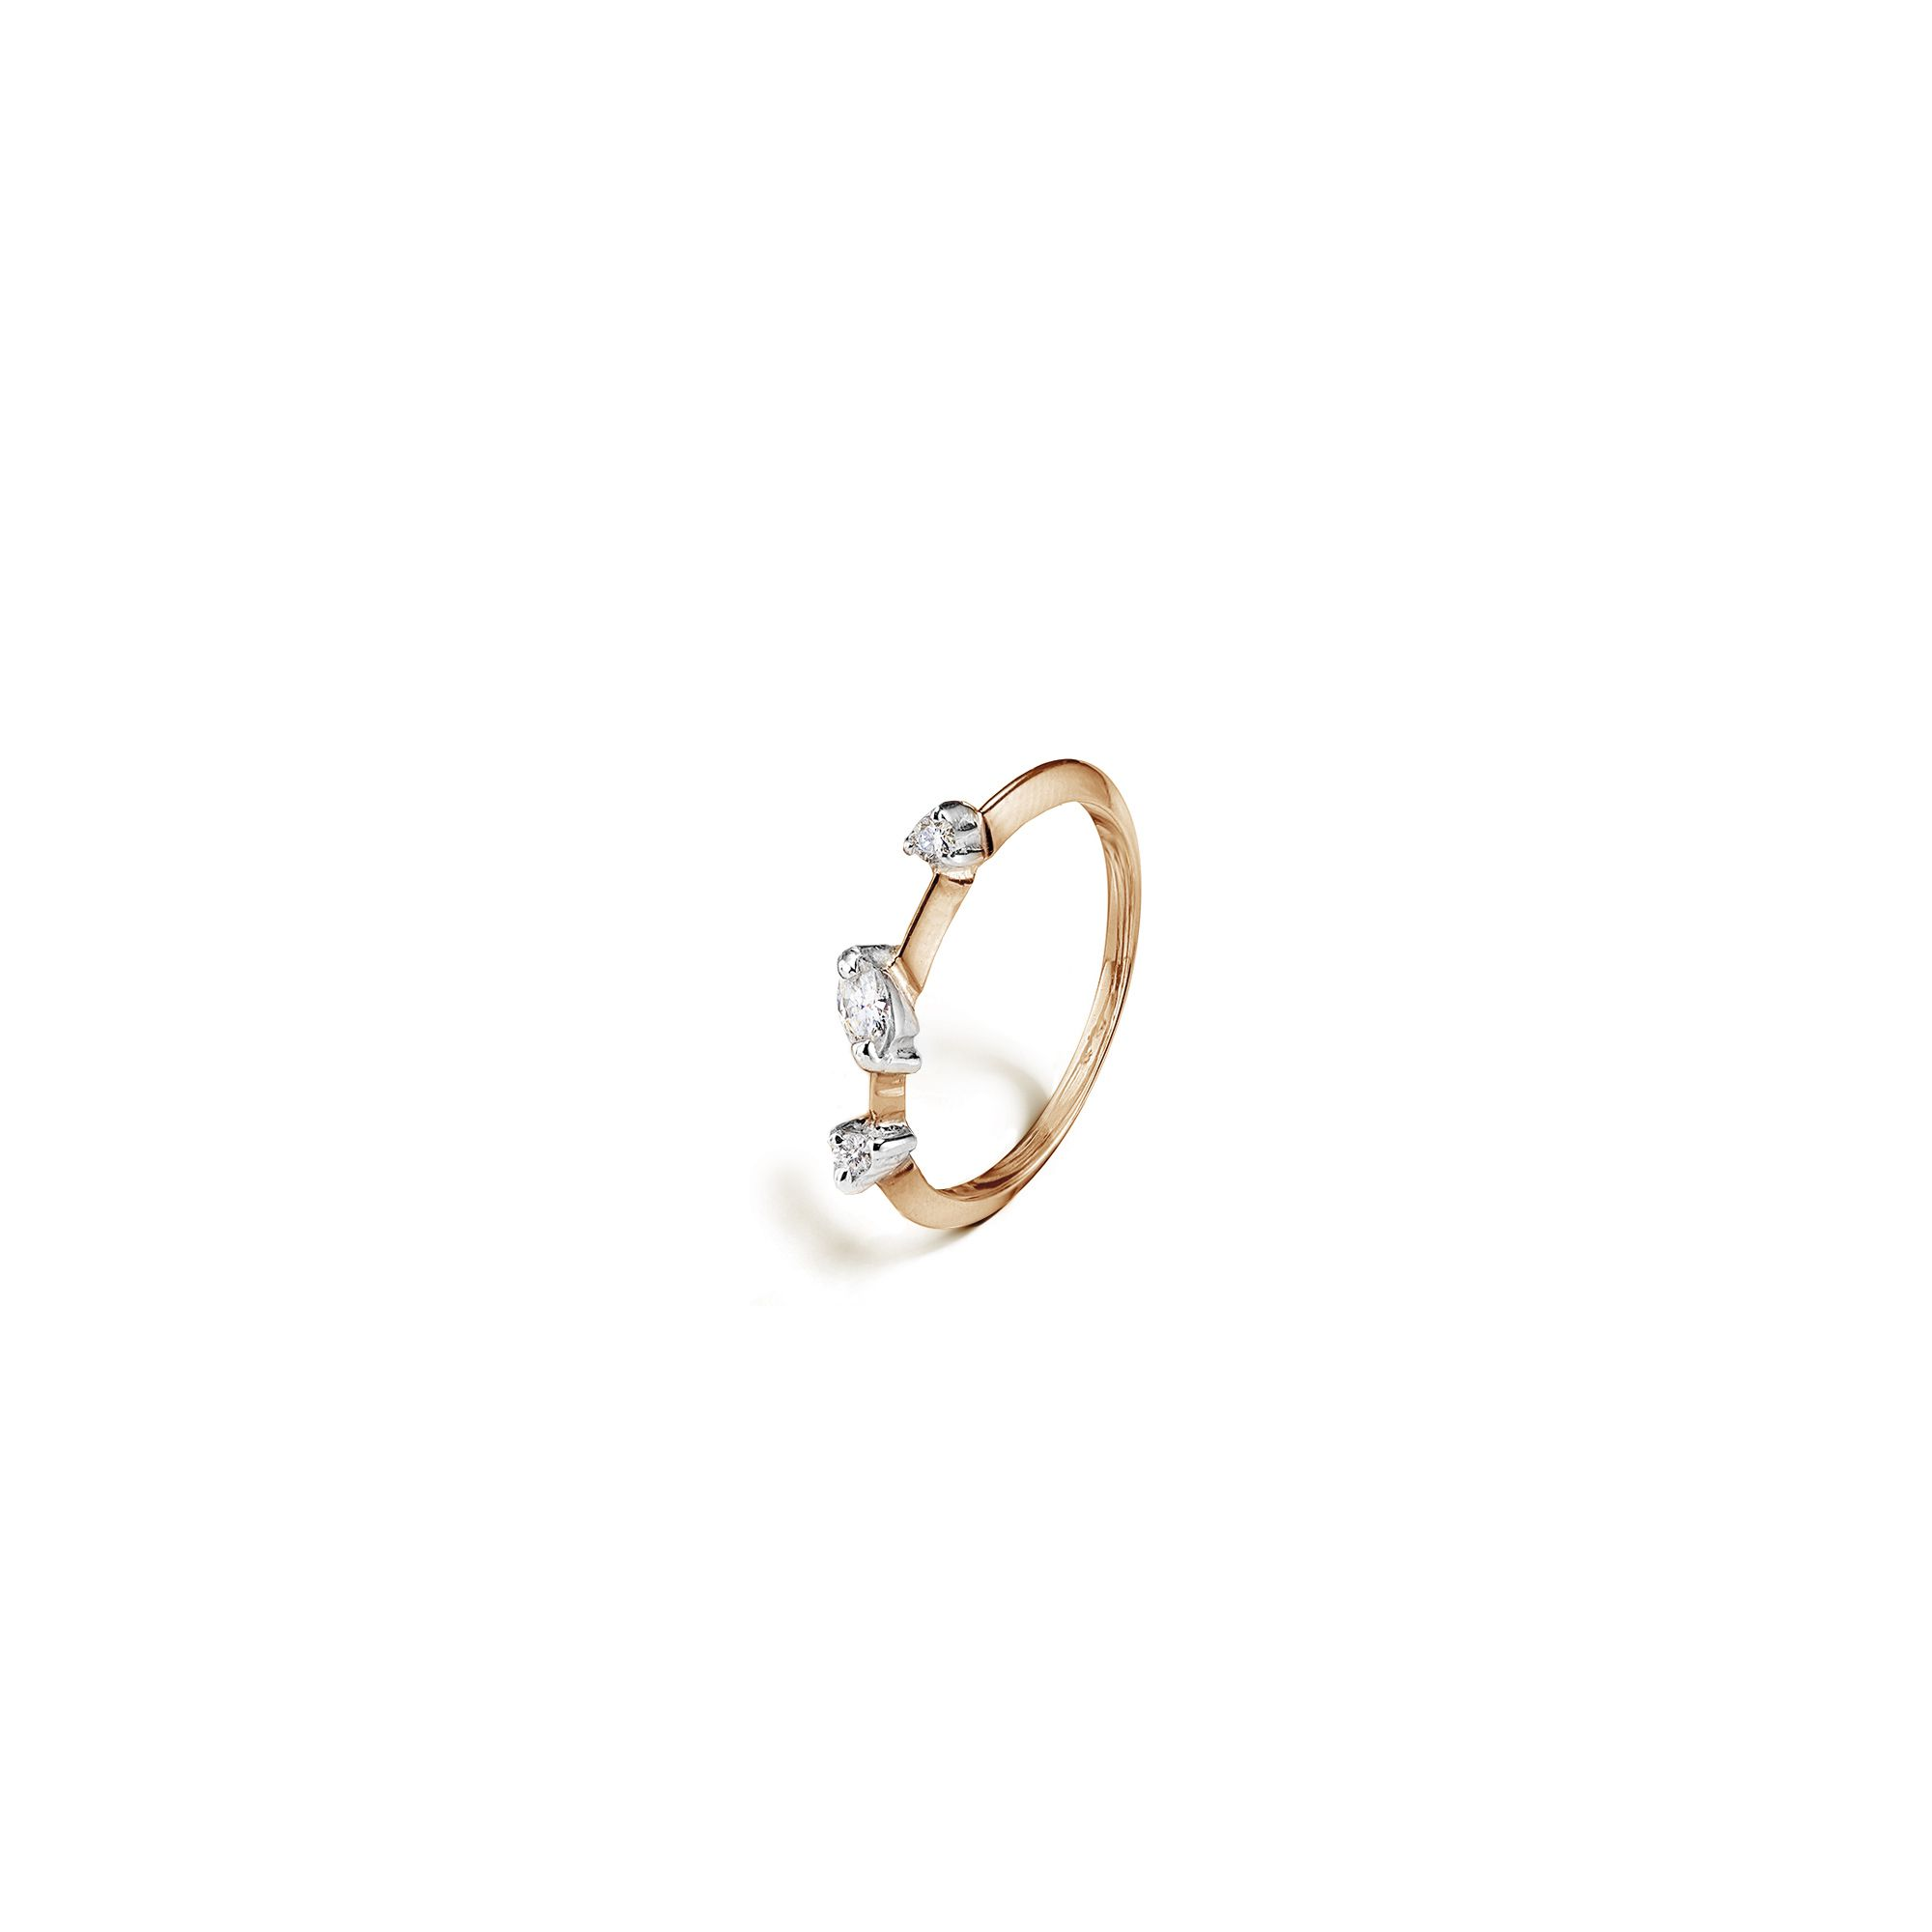 Rose gold 'Balance' ring with marquise Ring in rose gold and diamods